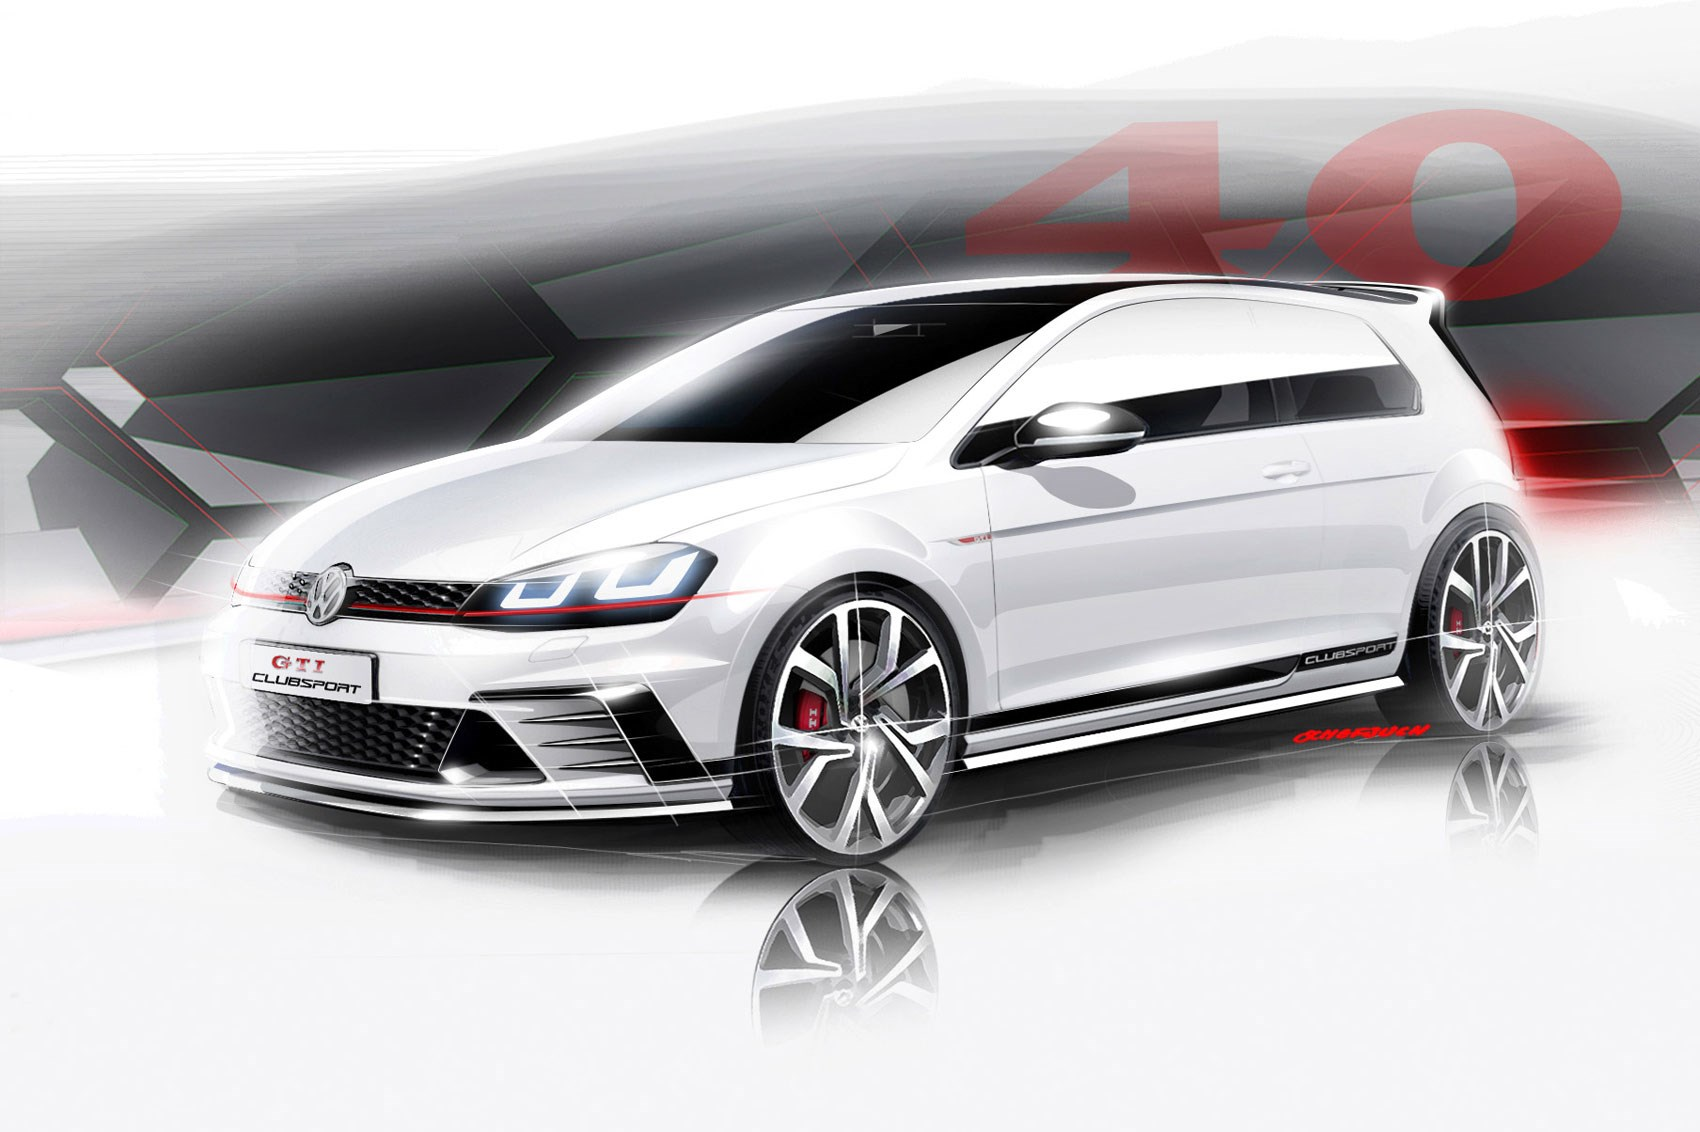 vw golf gti club sport 2015 a faster kind of gti confirmed for worthersee by car magazine. Black Bedroom Furniture Sets. Home Design Ideas